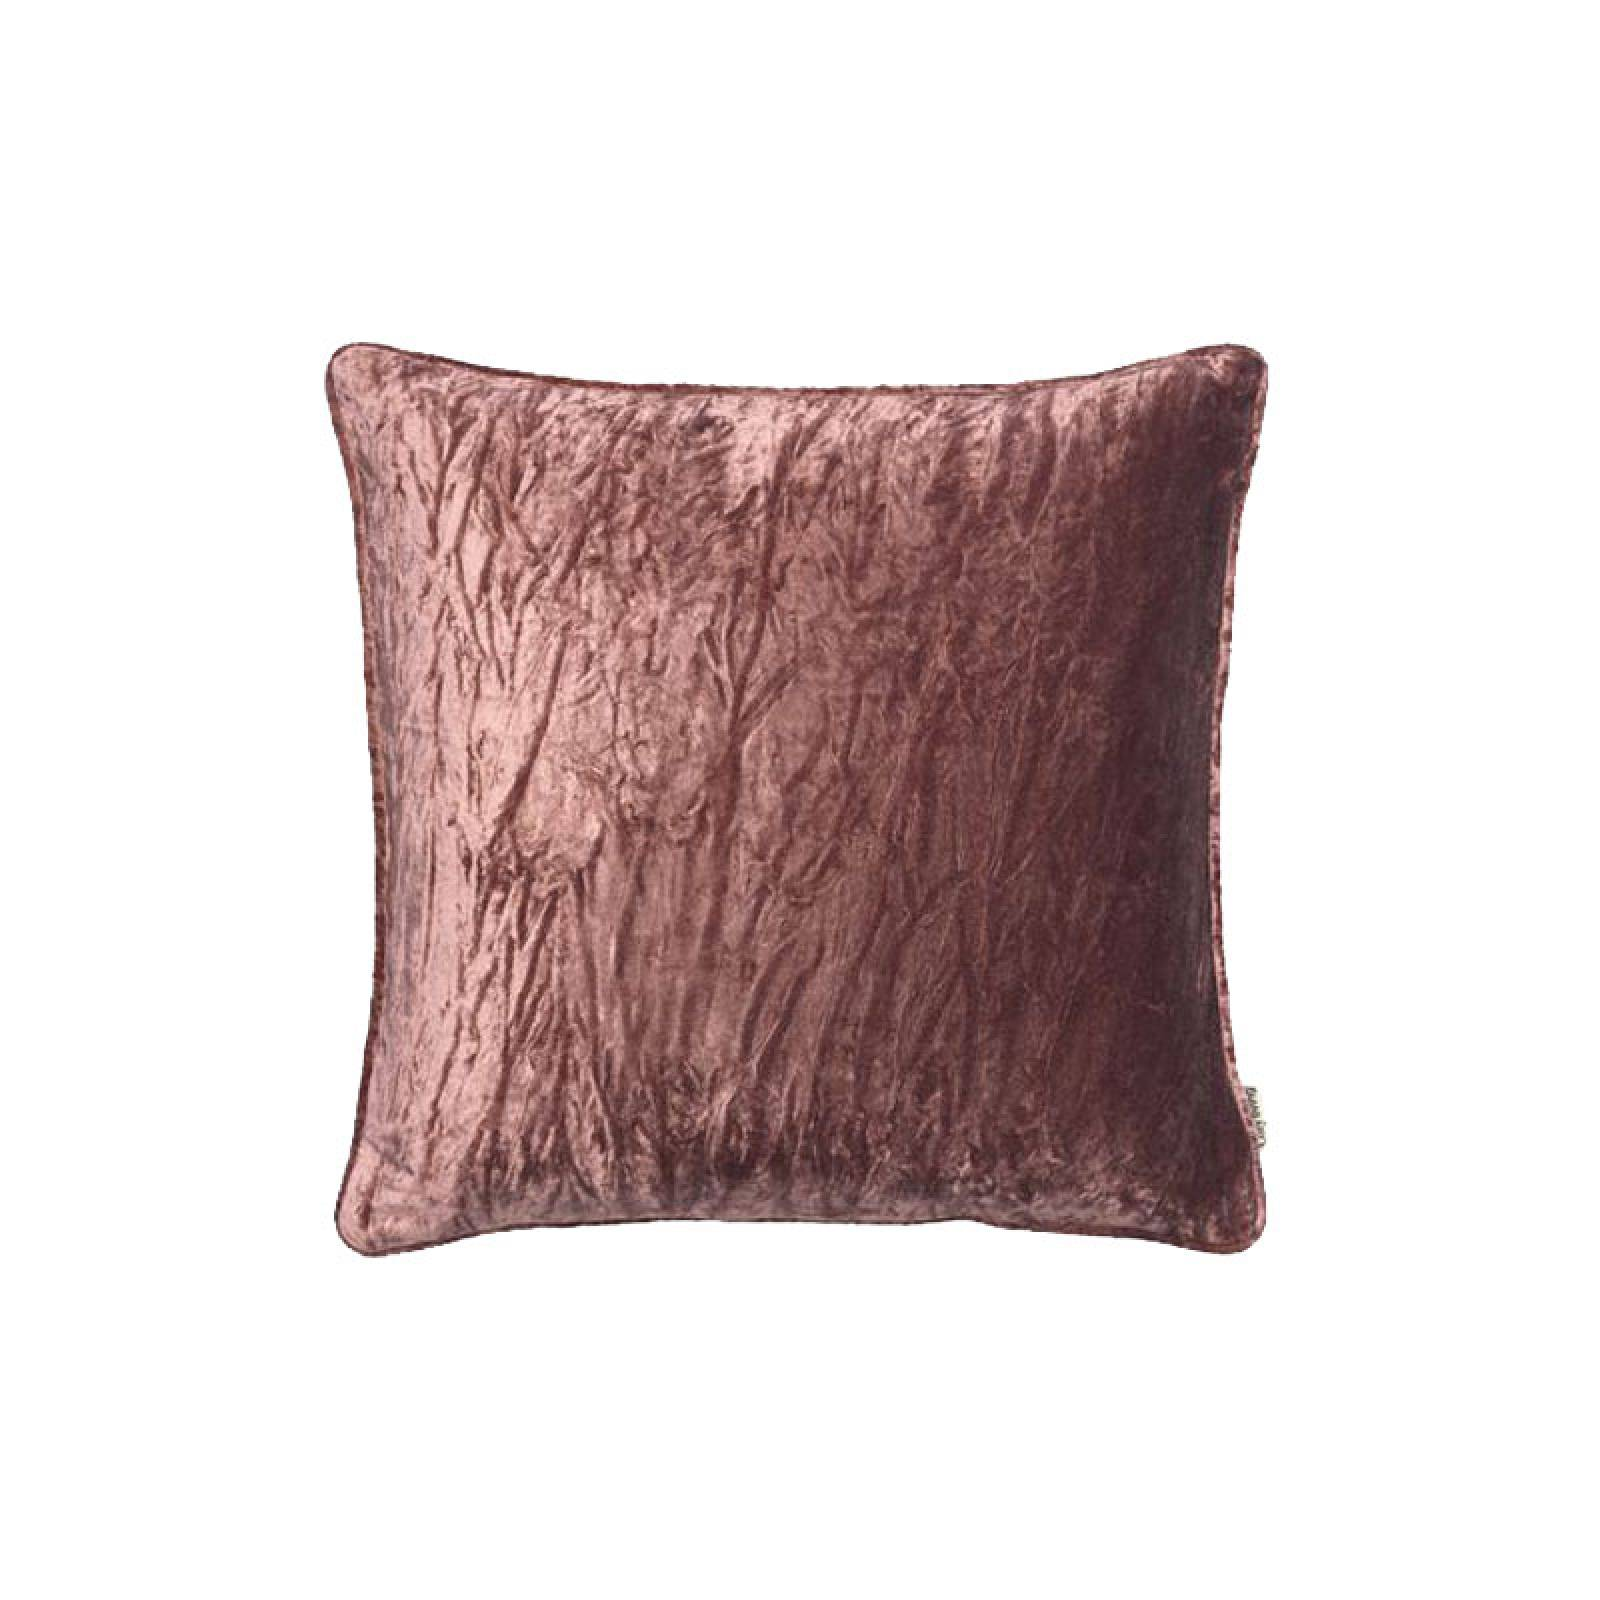 Square Velvet Cushion With Piping In Rust thumbnails